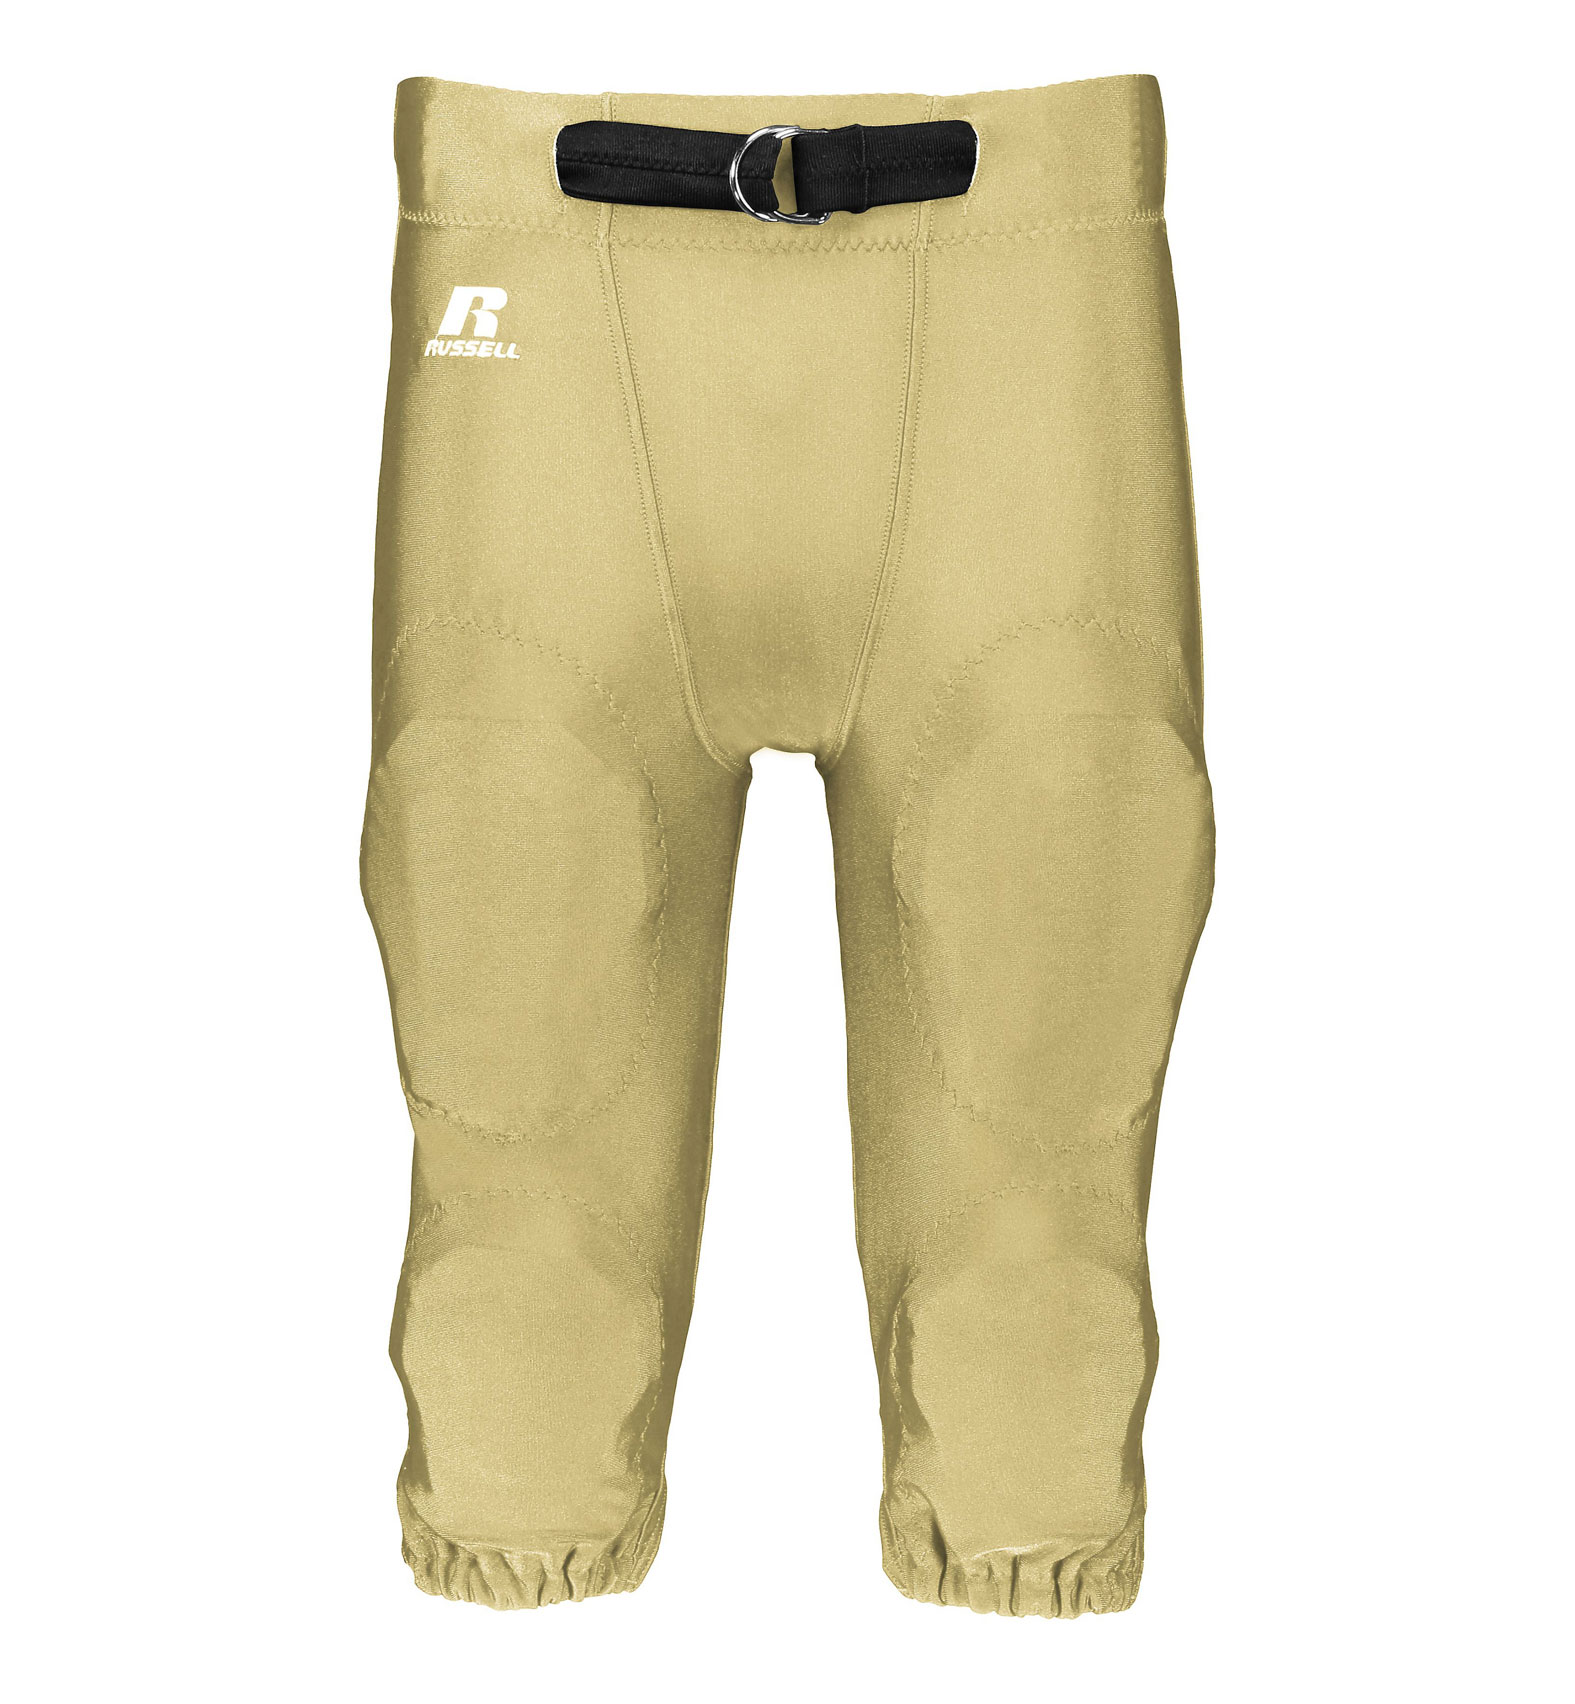 Russell Athletic Youth Deluxe Game Pant